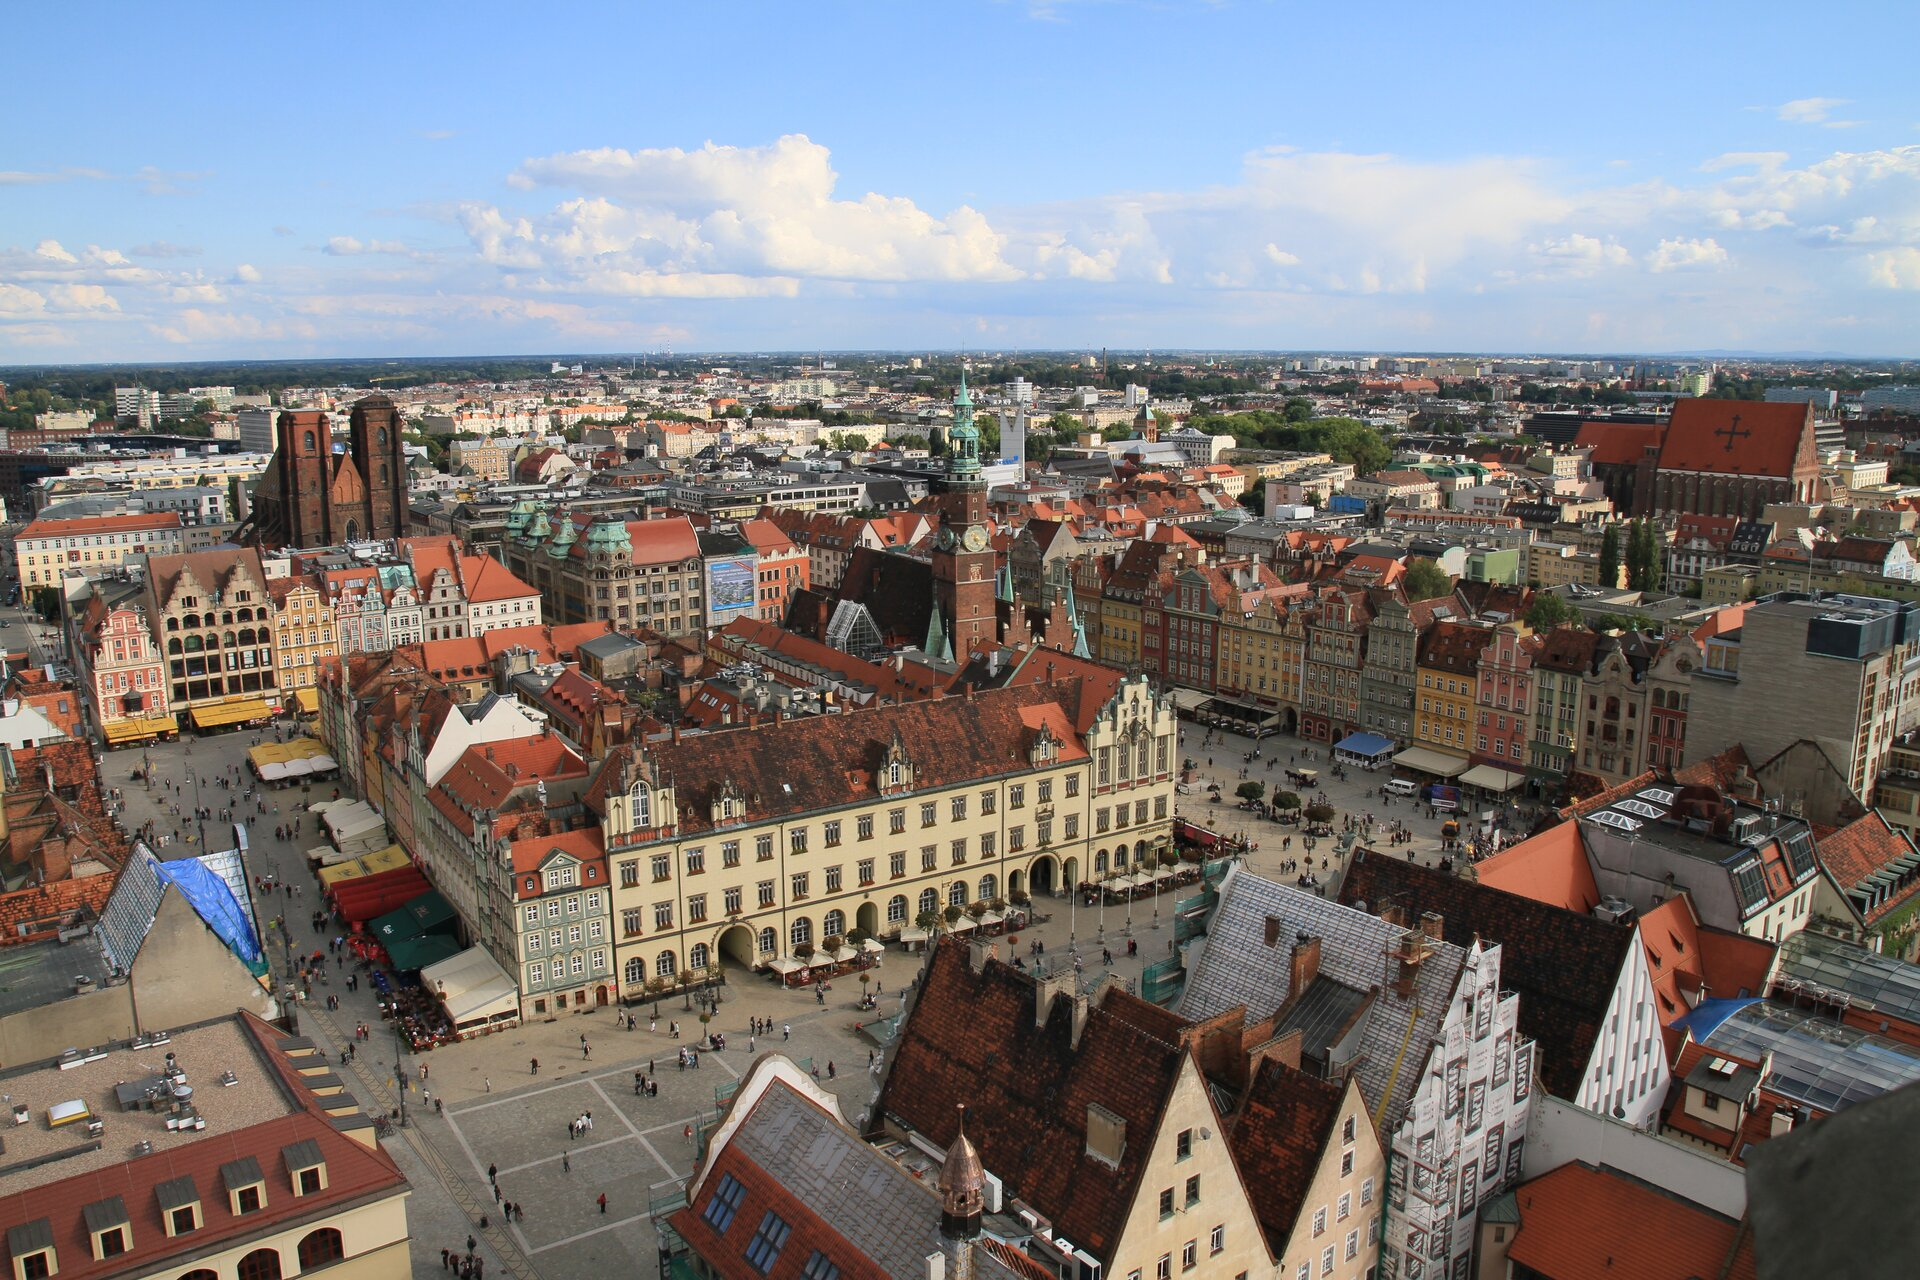 (Re)Construction of Identity of Cities Using the Examples of Szczecin and Wroclaw